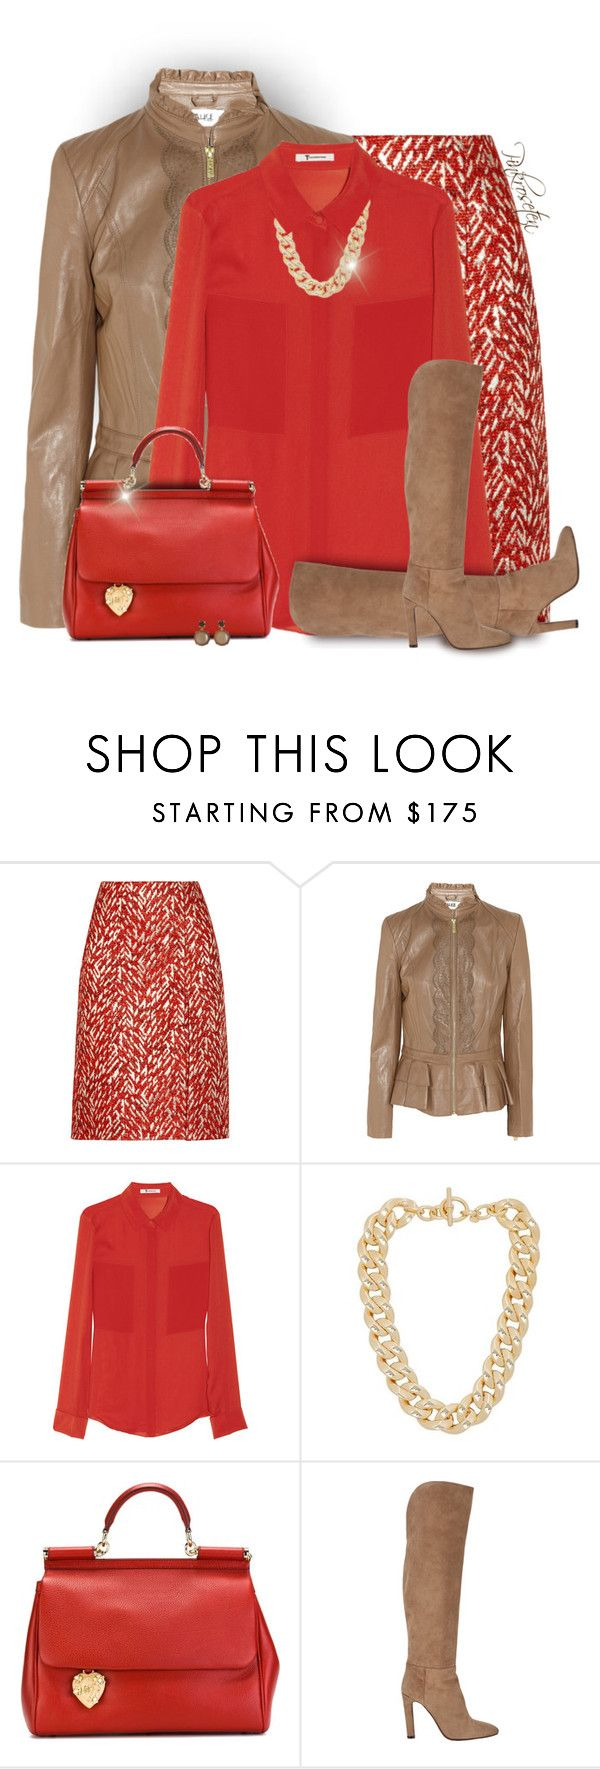 """Metallic Clothing"" by pinkroseten ❤ liked on Polyvore featuring Marni, Alice by Temperley, T By Alexander Wang, Michael Kors, Dolce&Gabbana, Gabriela Hearst and Kate Spade"